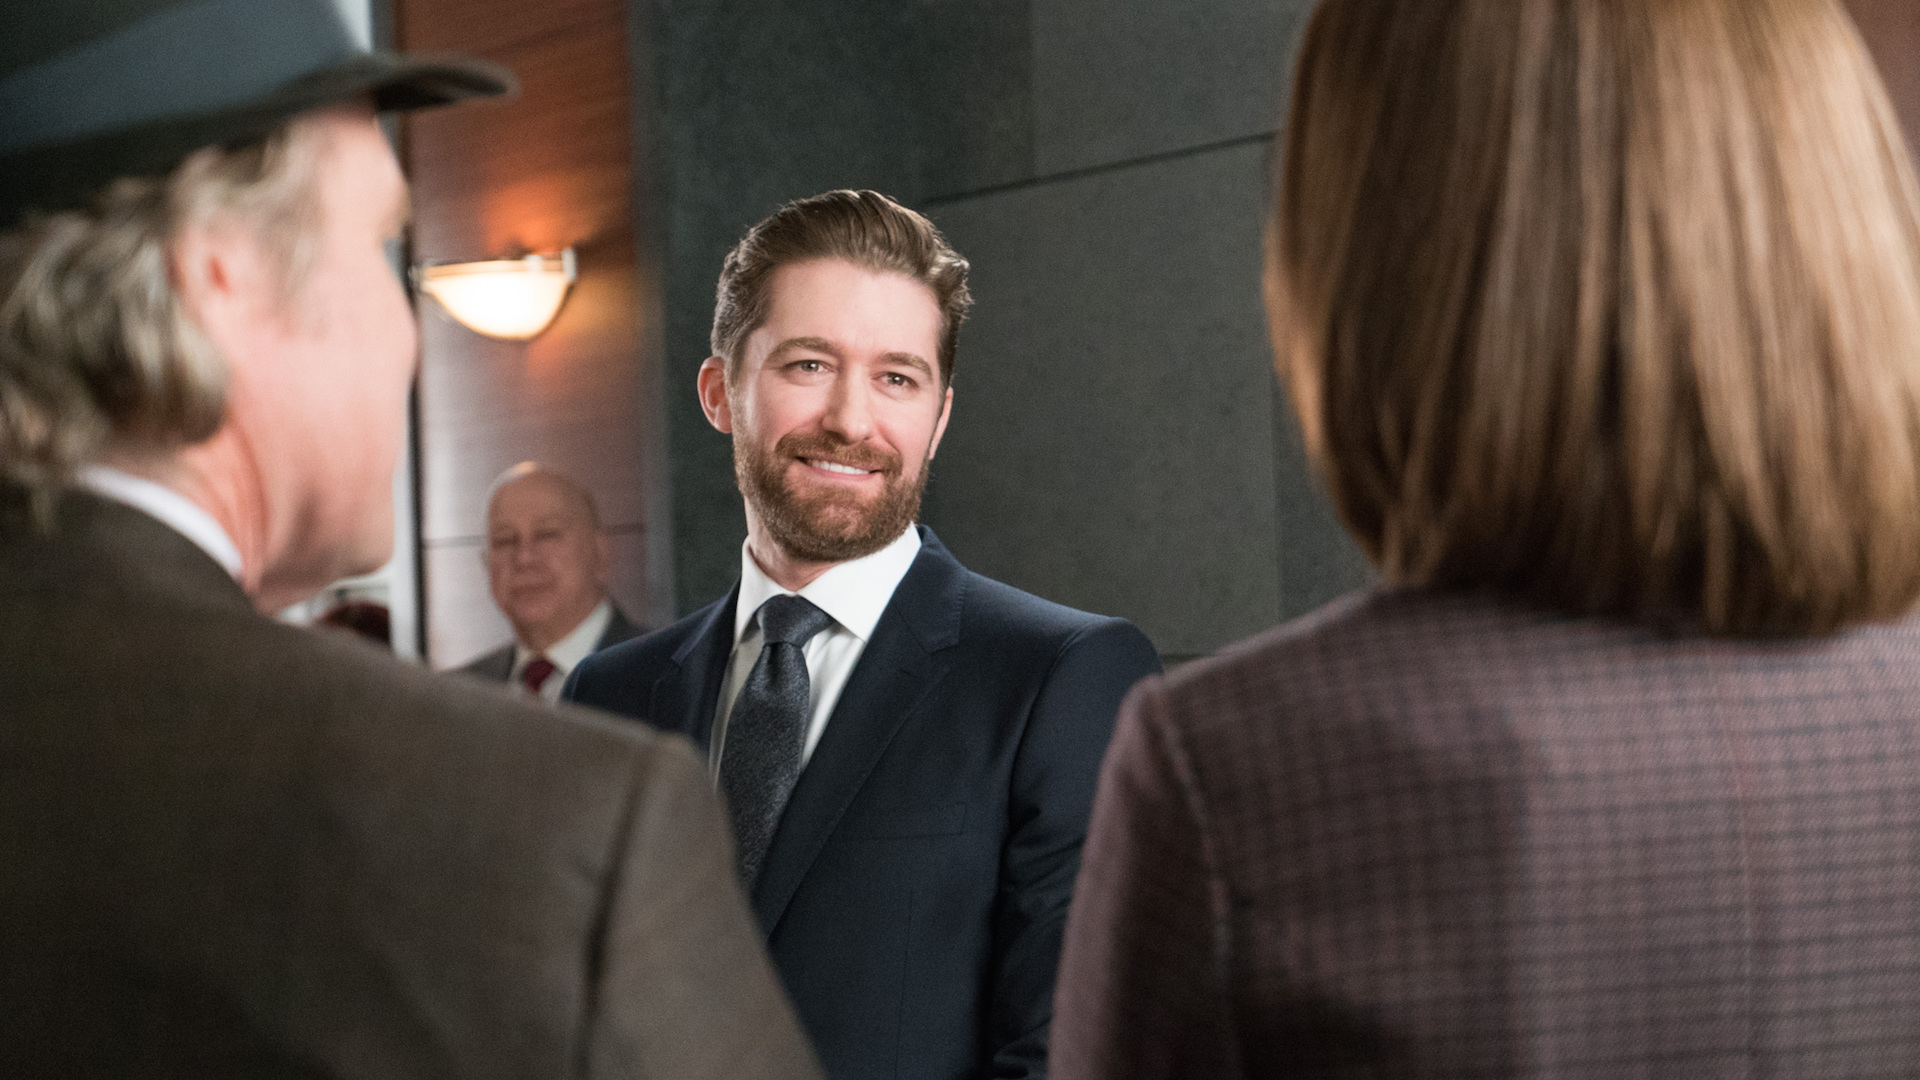 Matthew Morrison as Assistant U.S. Attorney Connor Fox